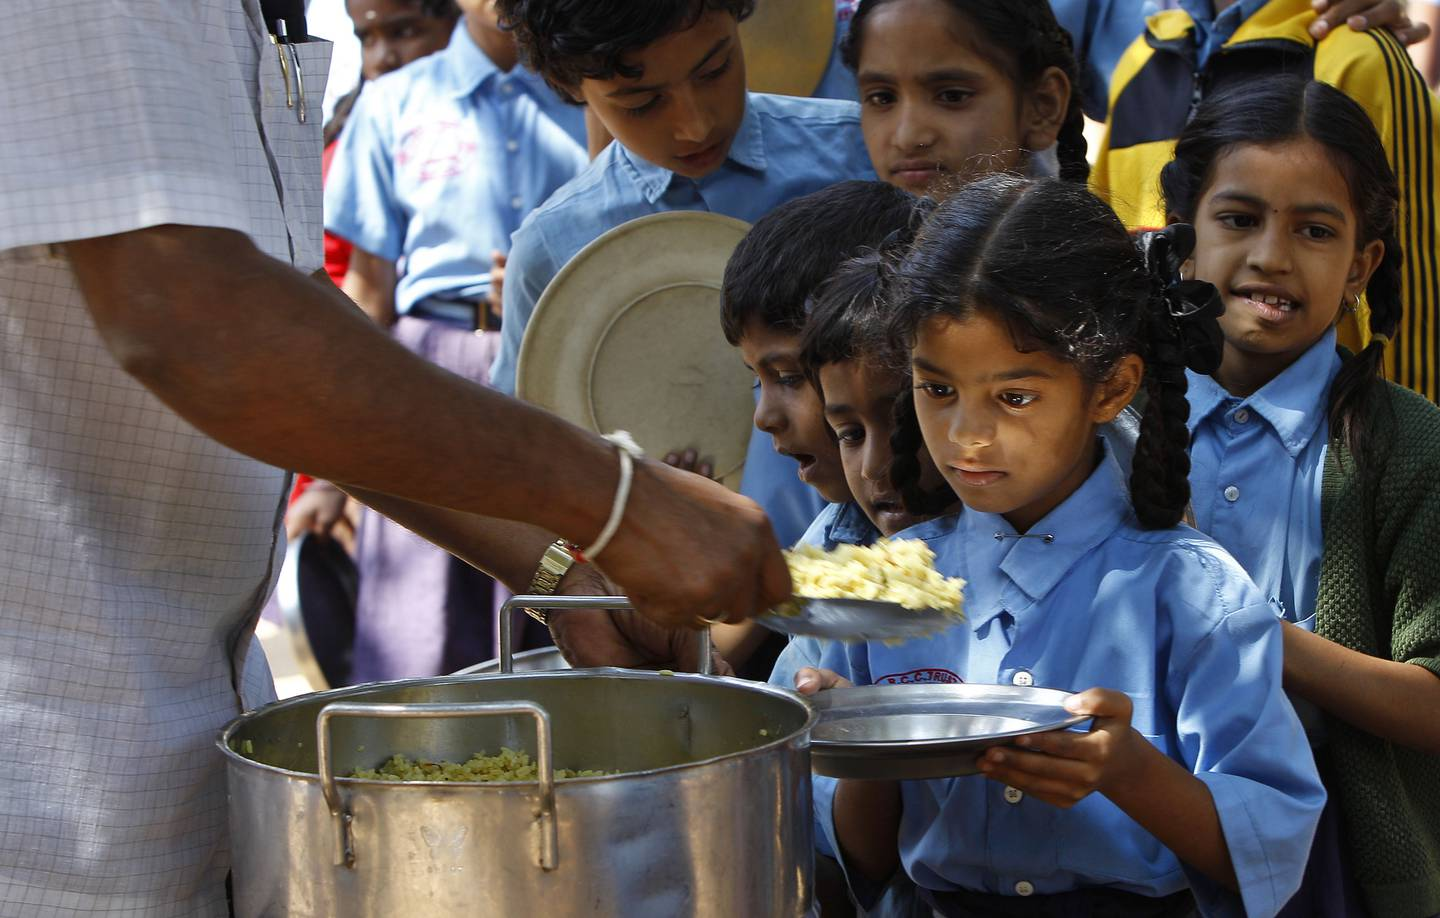 A girl looks at food served to her for free at a government-run school in Bangalore, India, Wednesday, Jan. 11, 2012. UNICEF's latest data say one-third of the world's malnourished children younger than 3 lives in India, a rate worse than sub-Saharan Africa. Indian Prime Minister Manmohan Singh has called child malnutrition the country's shame. (AP Photo/Aijaz Rahi)